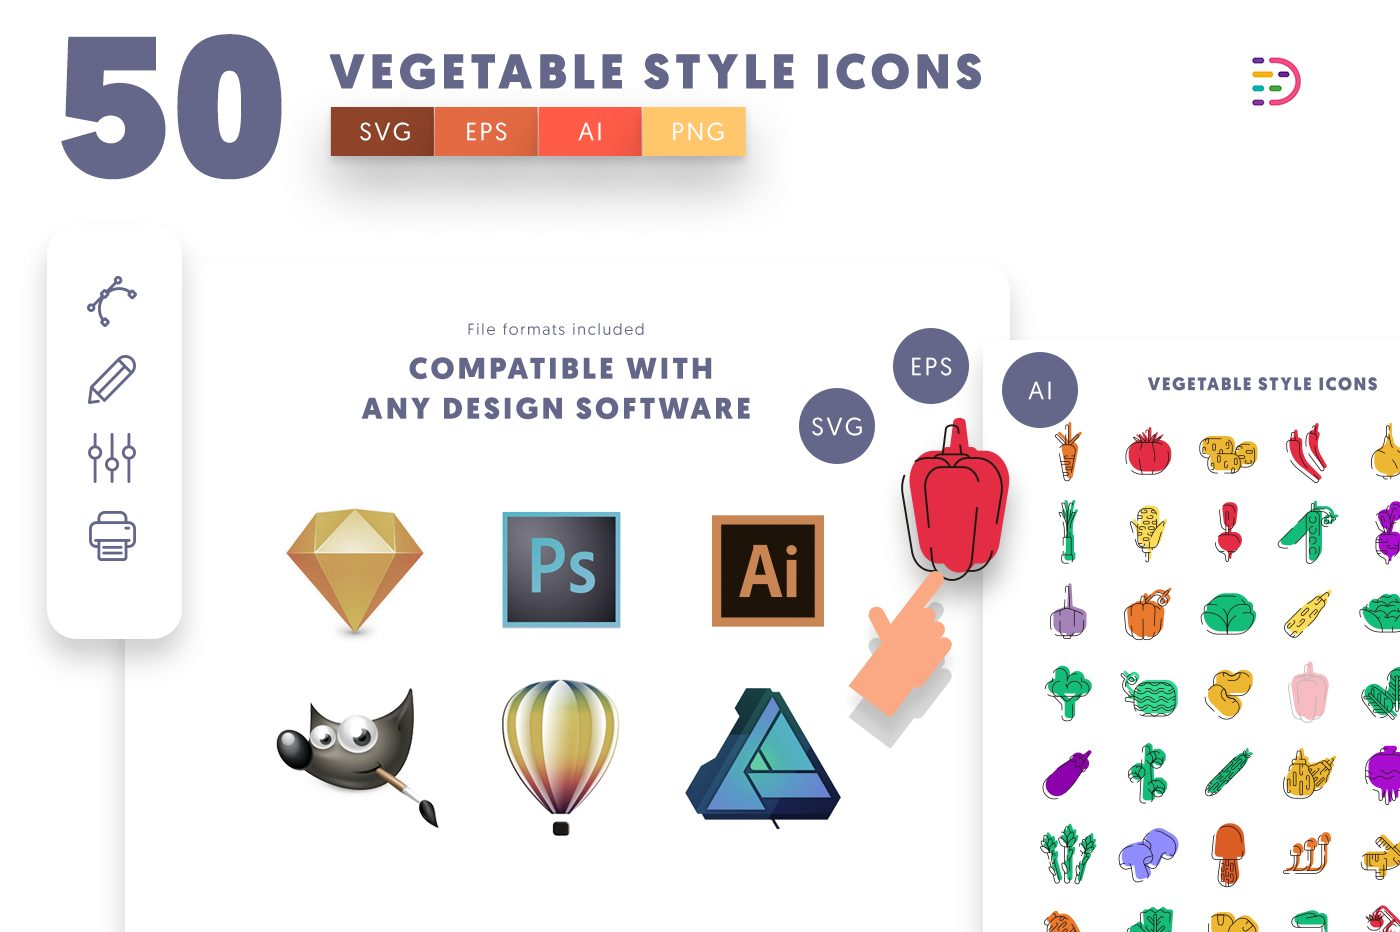 full vector 50 Vegetable Style Icons EPS, SVG, PNG